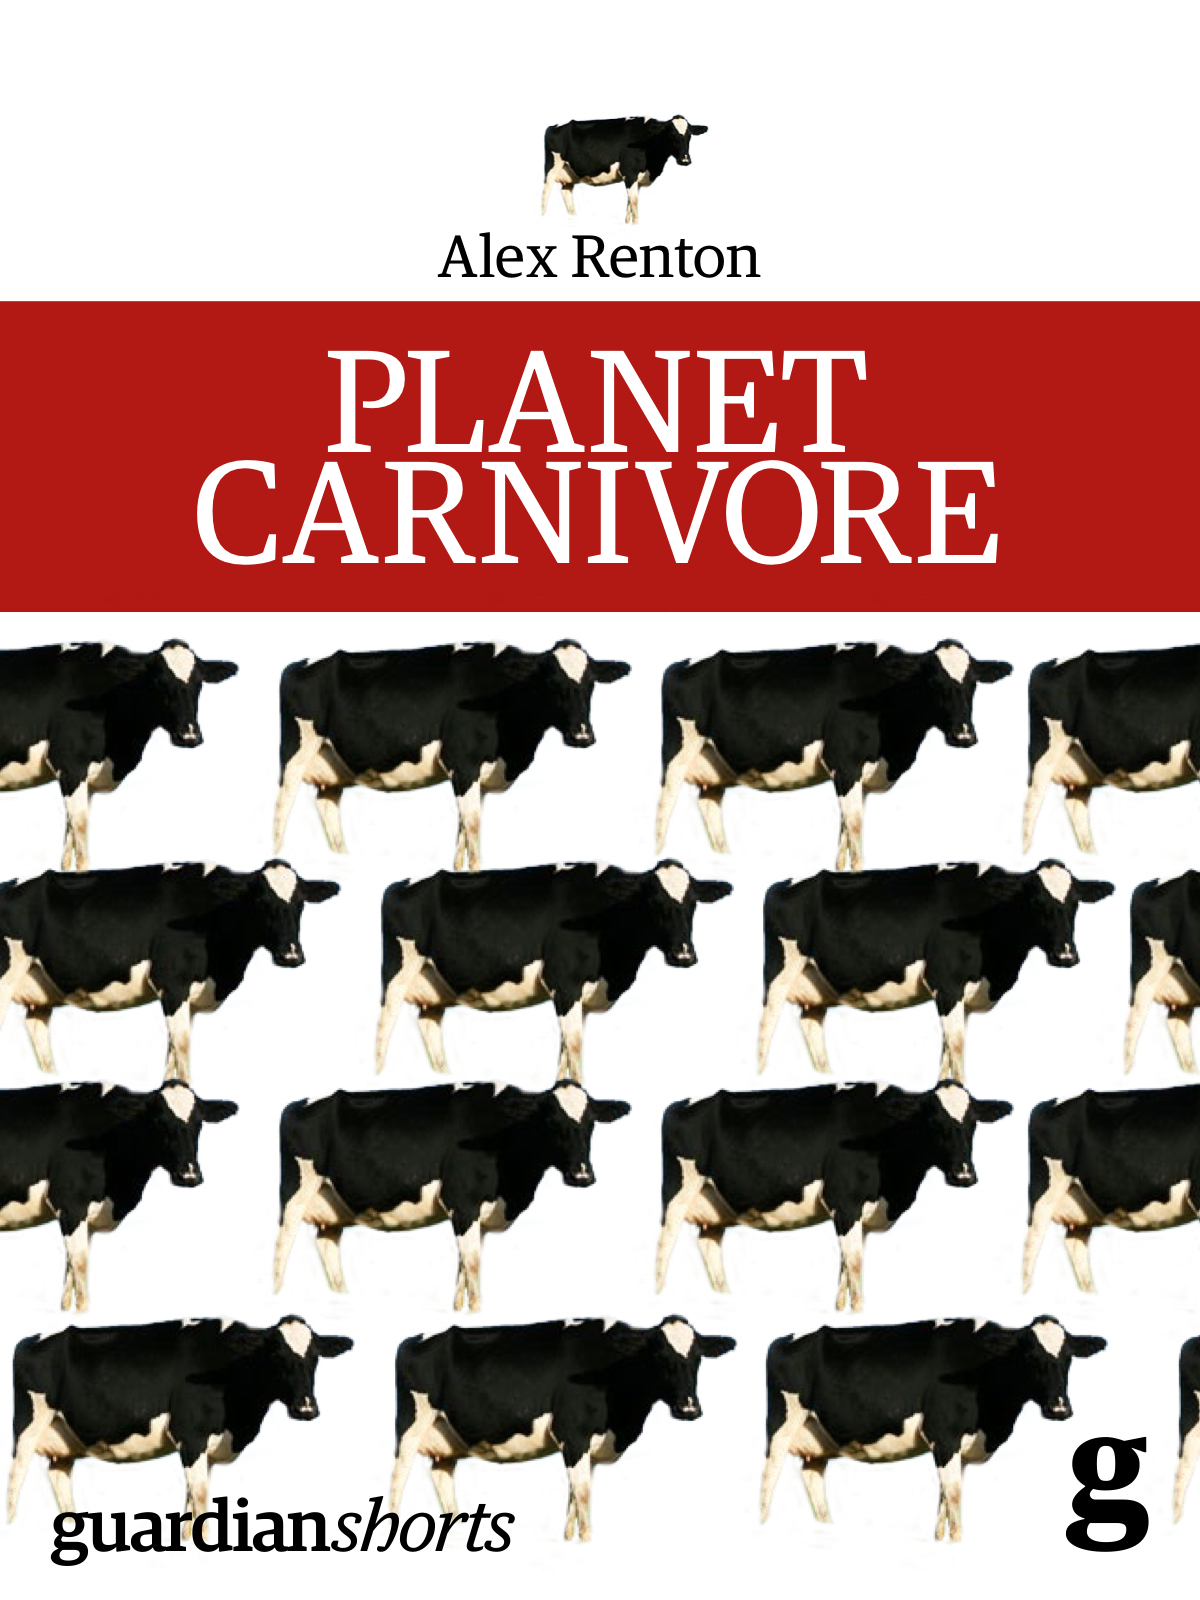 http://www.guardianshorts.co.uk/browse-ebooks/science-environment-ebooks/planet-carnivore-ebook